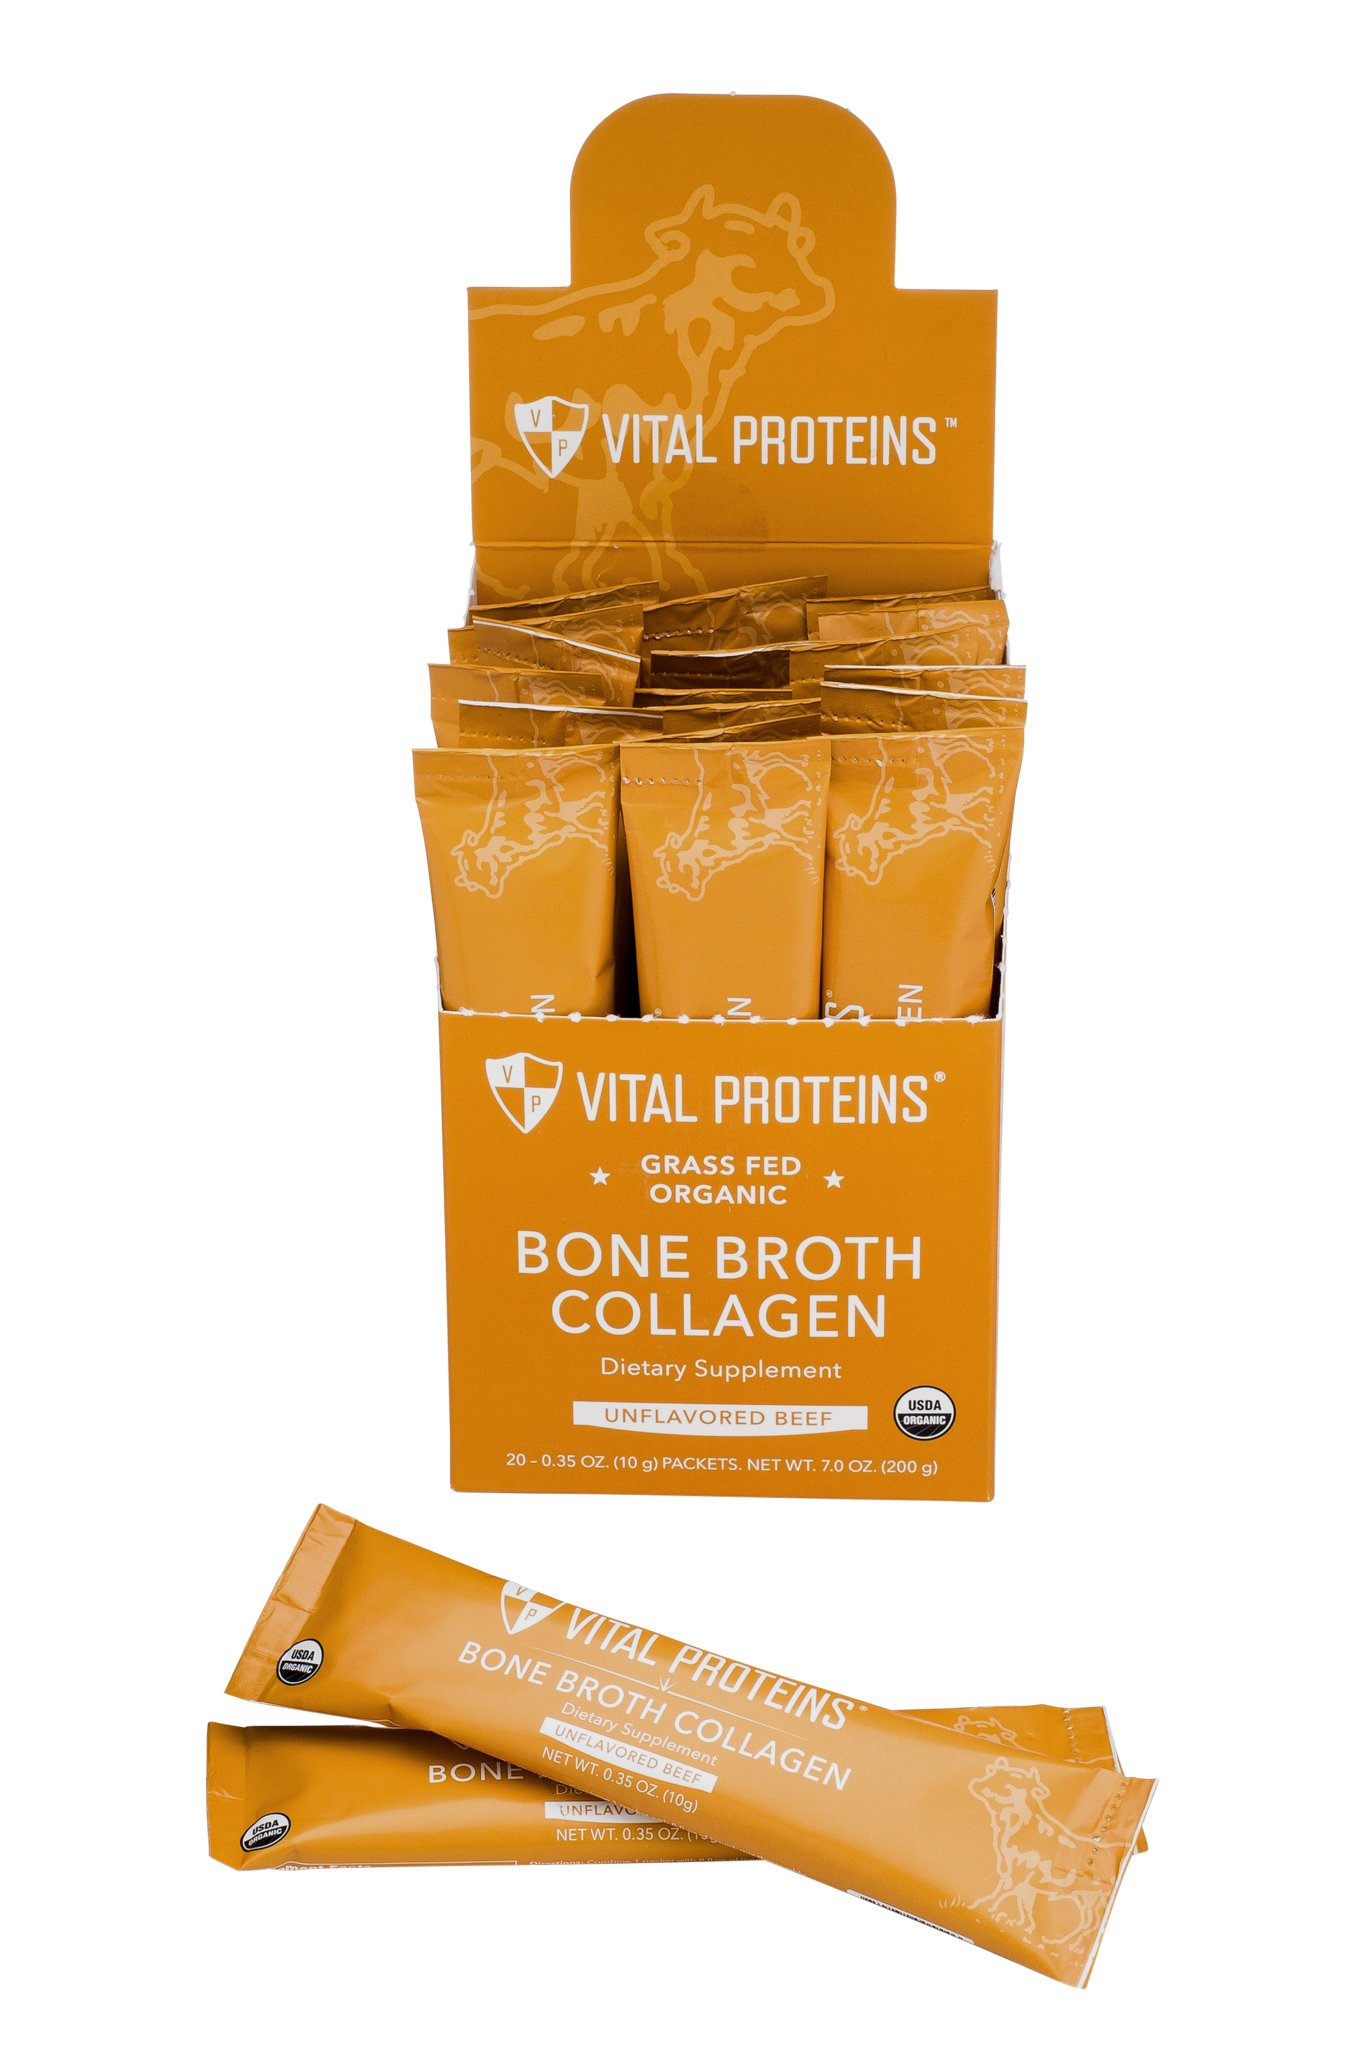 Vital Proteins Organic, Grass-Fed Beef Bone Broth Collagen Stick Packs (10g) (Box of 20) by Vital Proteins